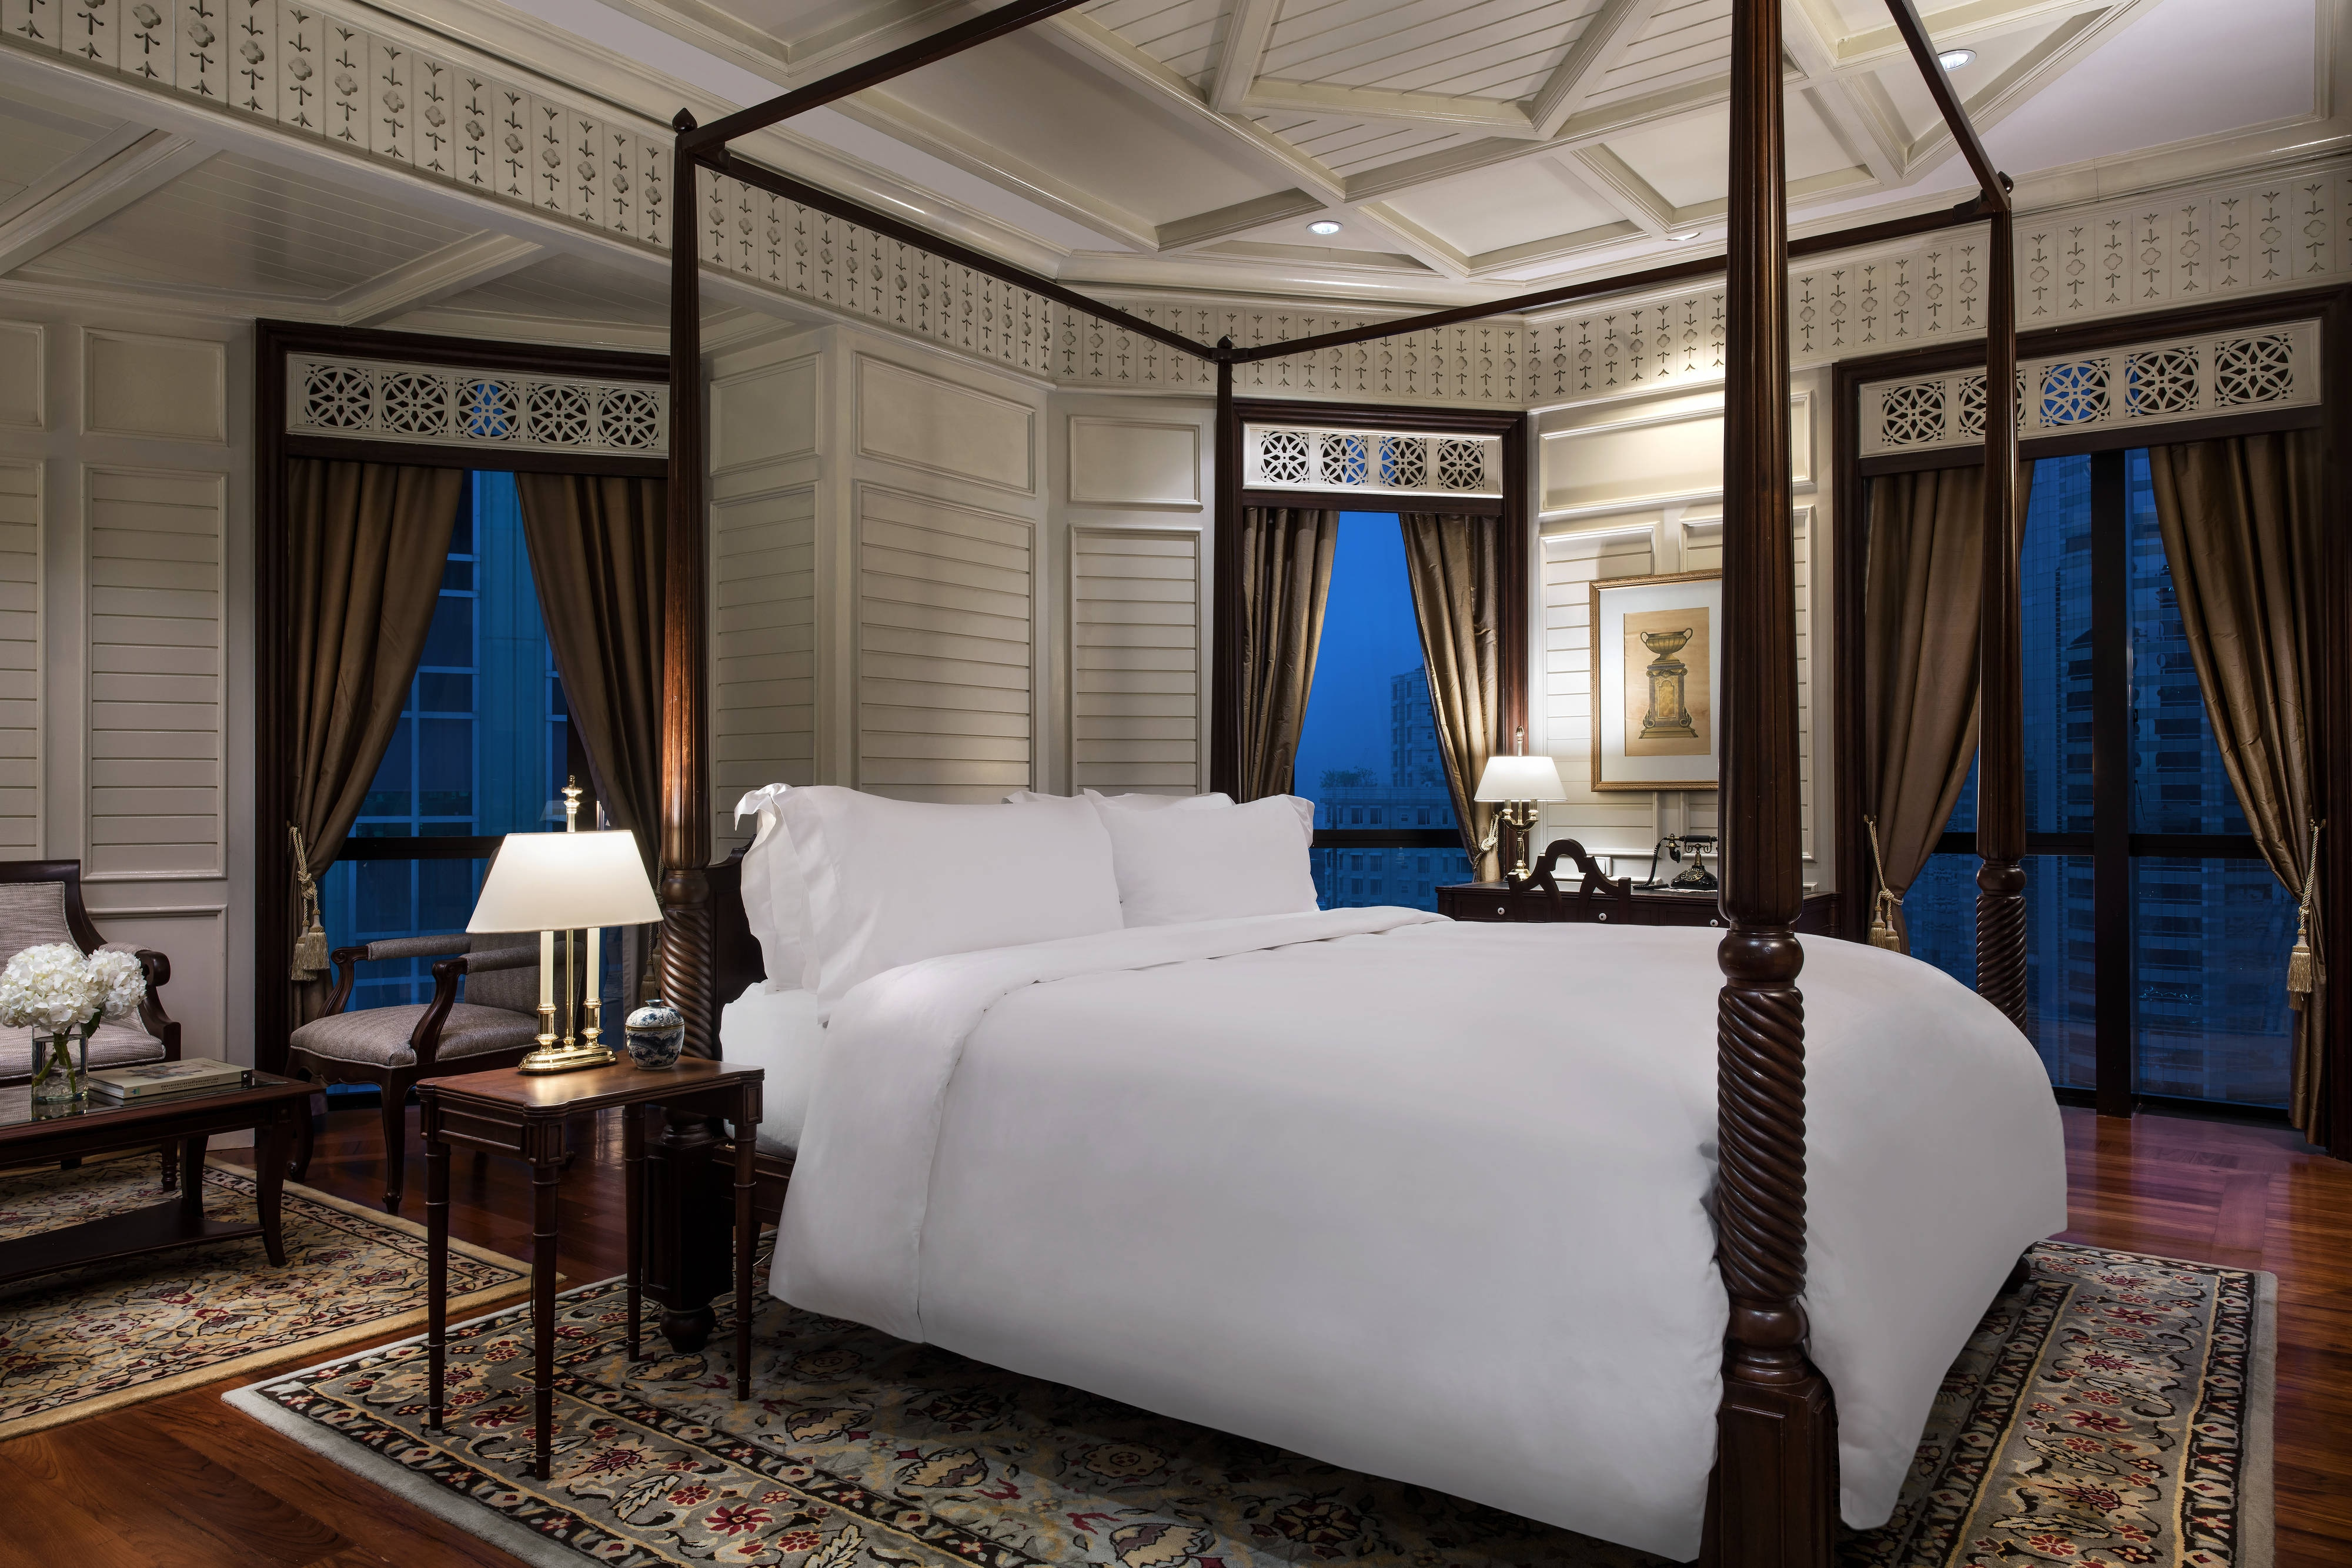 Vimarm Siam Royal Bedroom themed Suite